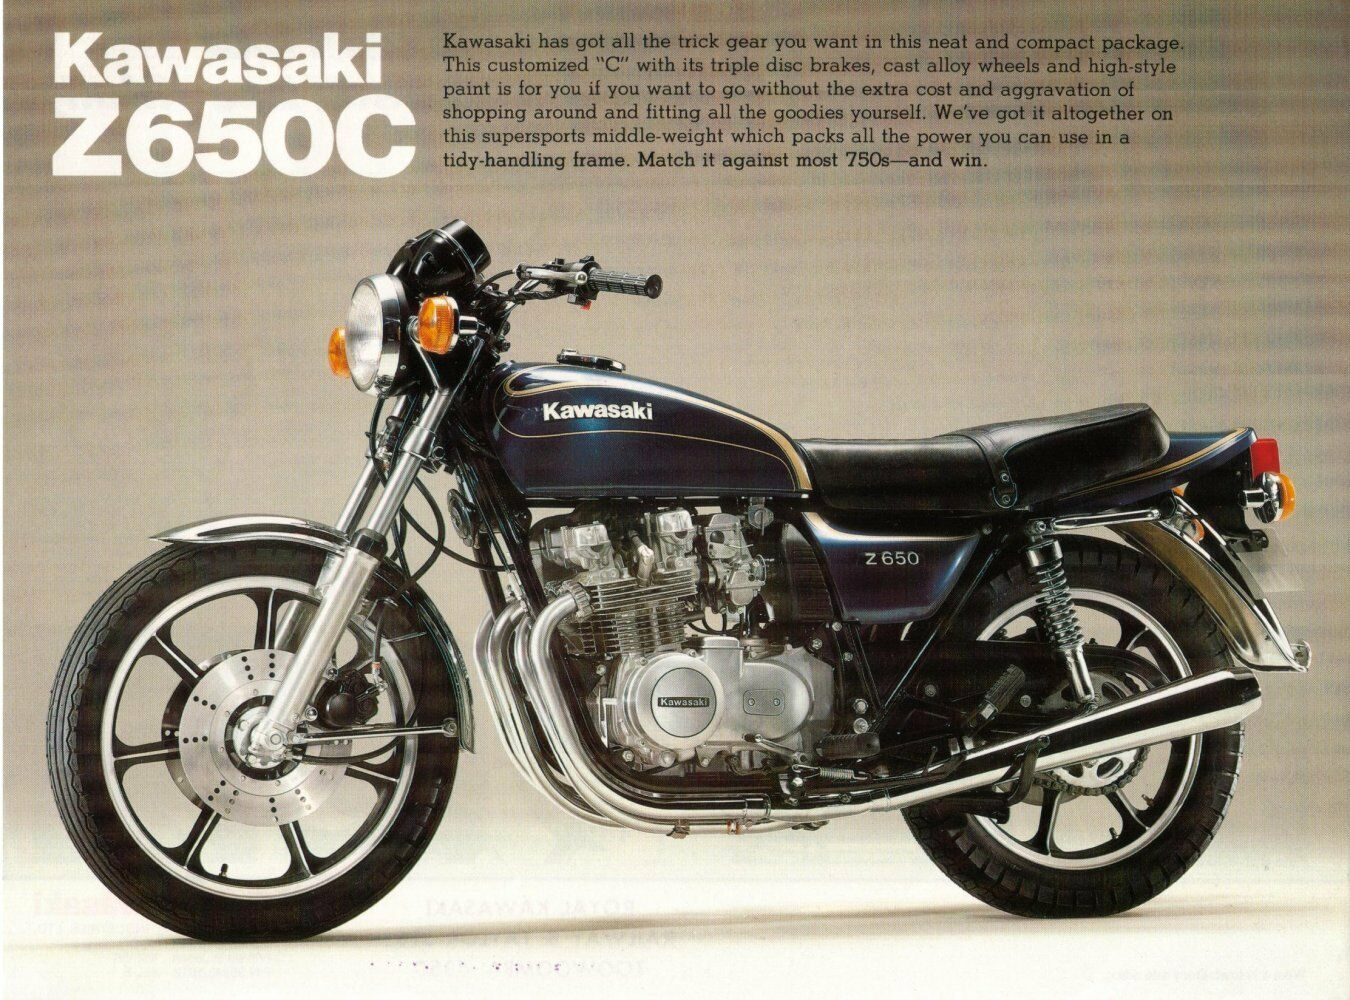 Kawasaki Z650 Wiring Diagram Electrical Diagrams Harness Restorers Guide Kz650 Part List Cd Tuning Carbs Motorcycle